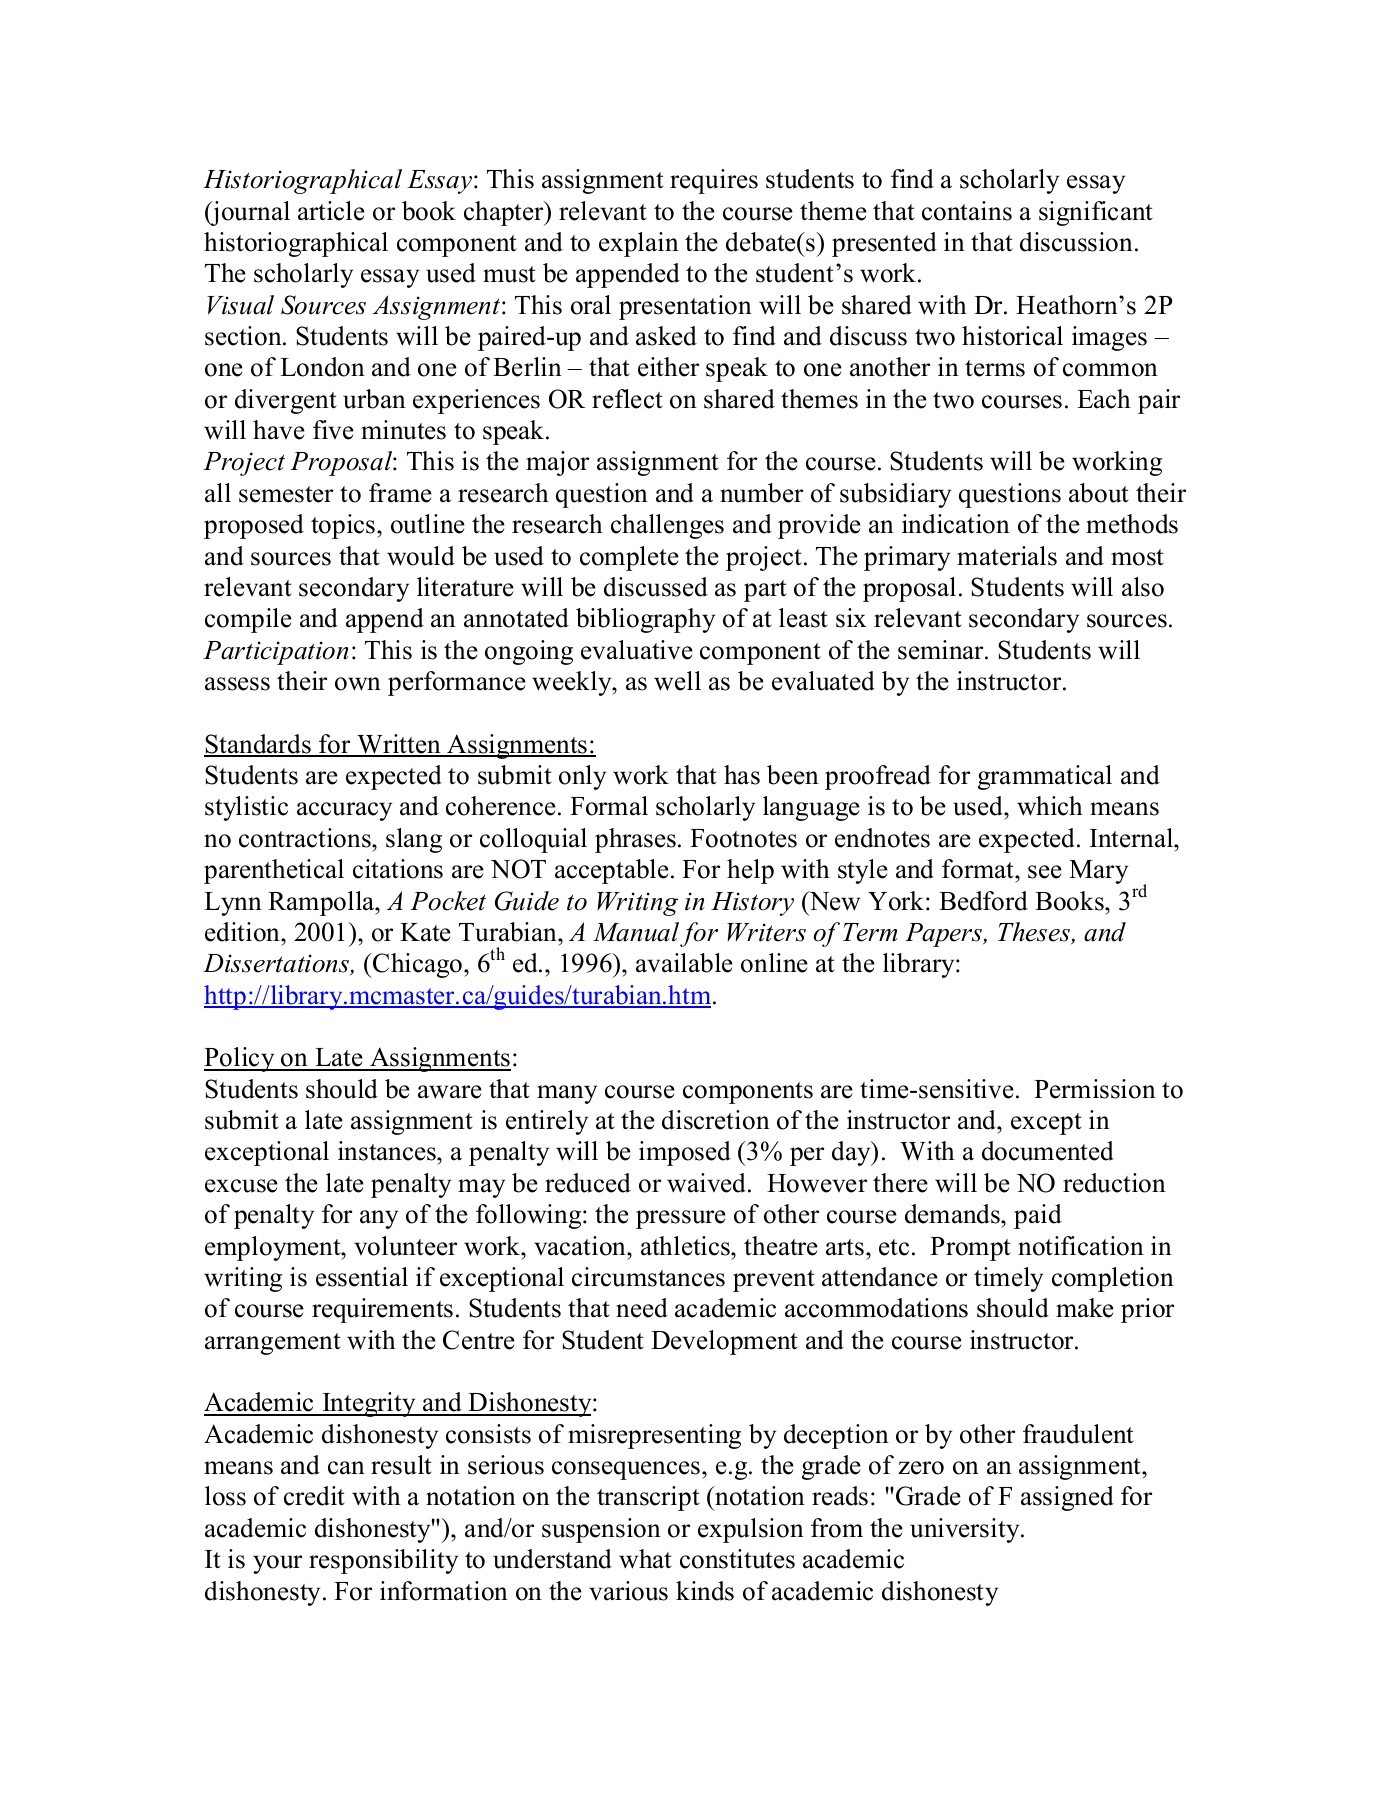 010 Historiographical Essay Phenomenal Historiography Sample On Slavery Topics Full